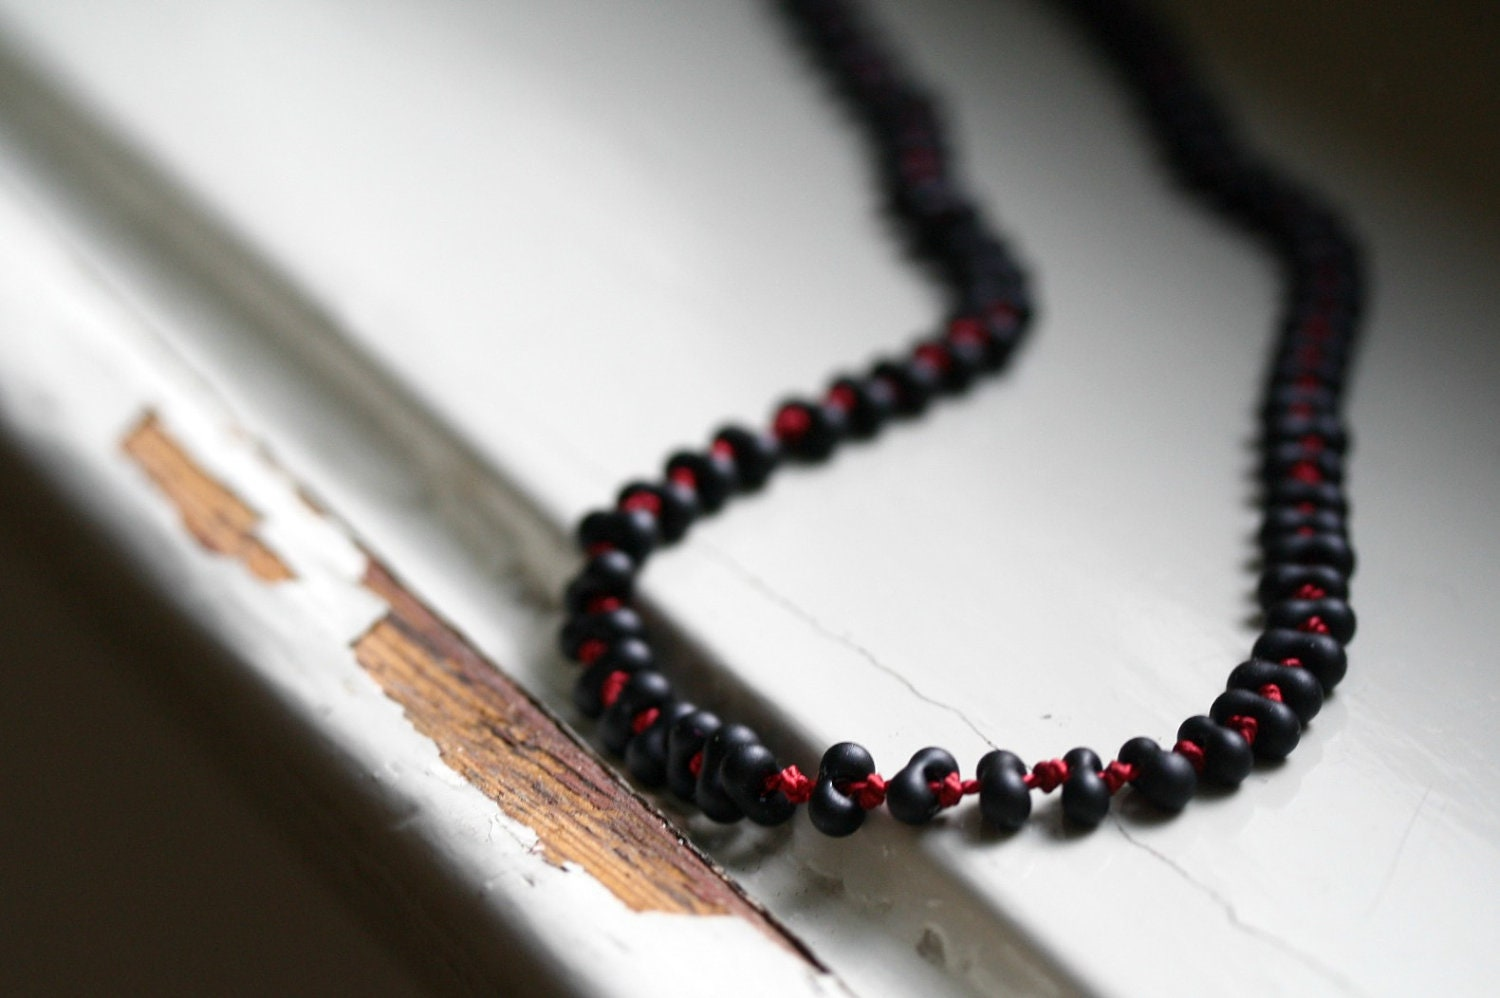 Mourning Beads Necklace / Jet Black Glass and Deep Red Silk - Augenblickphoto